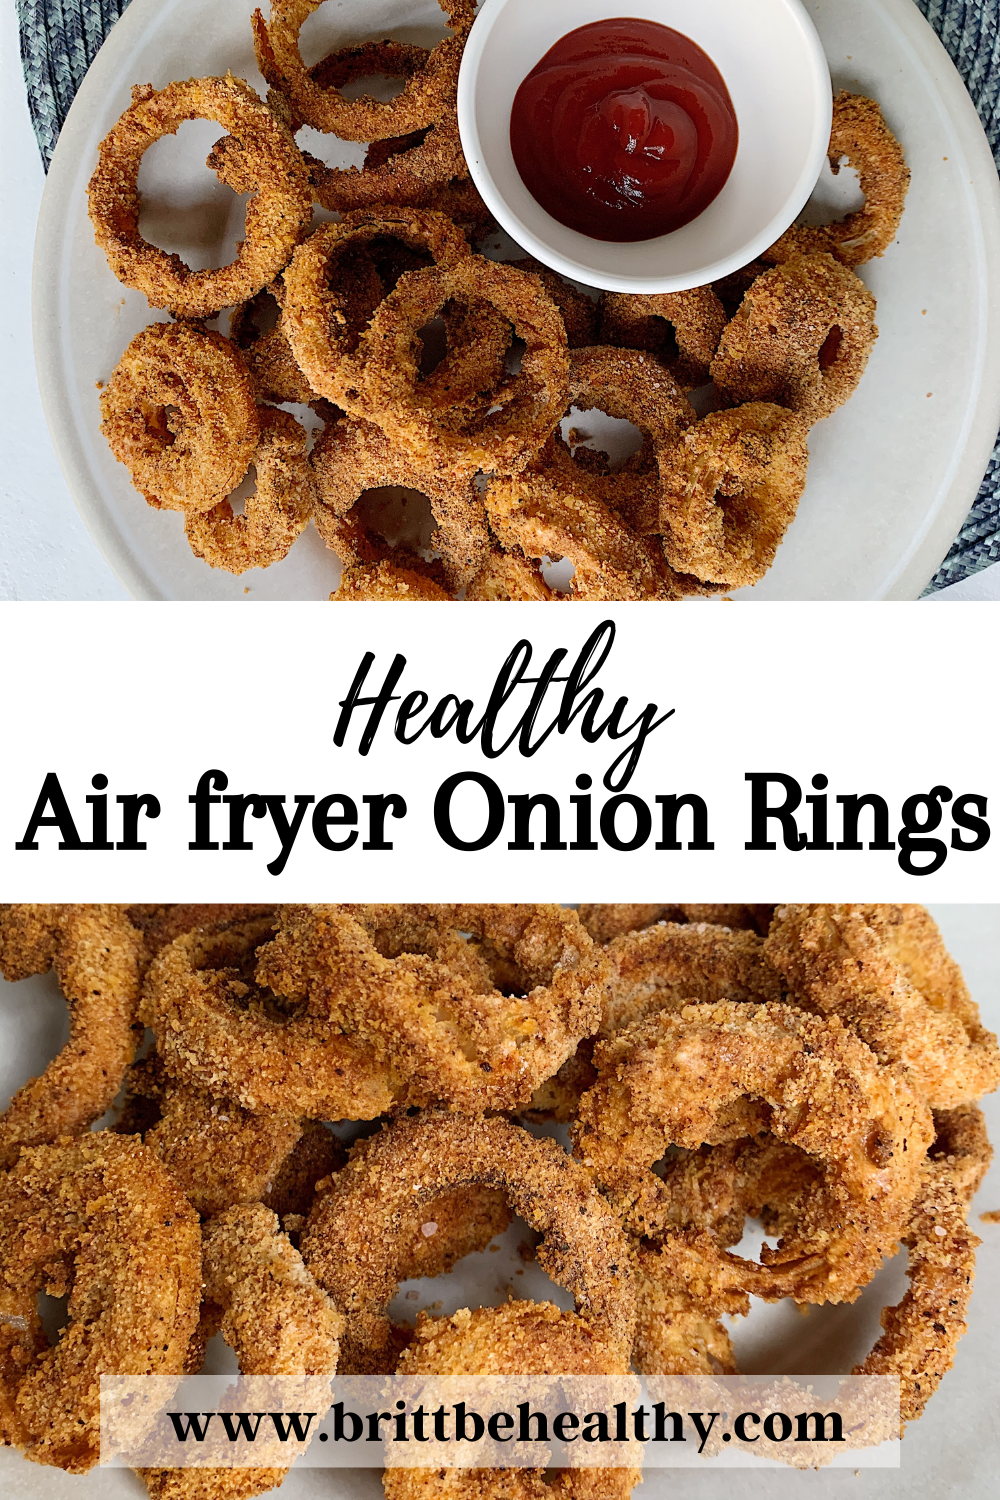 Healthy Air Fried Onion Rings